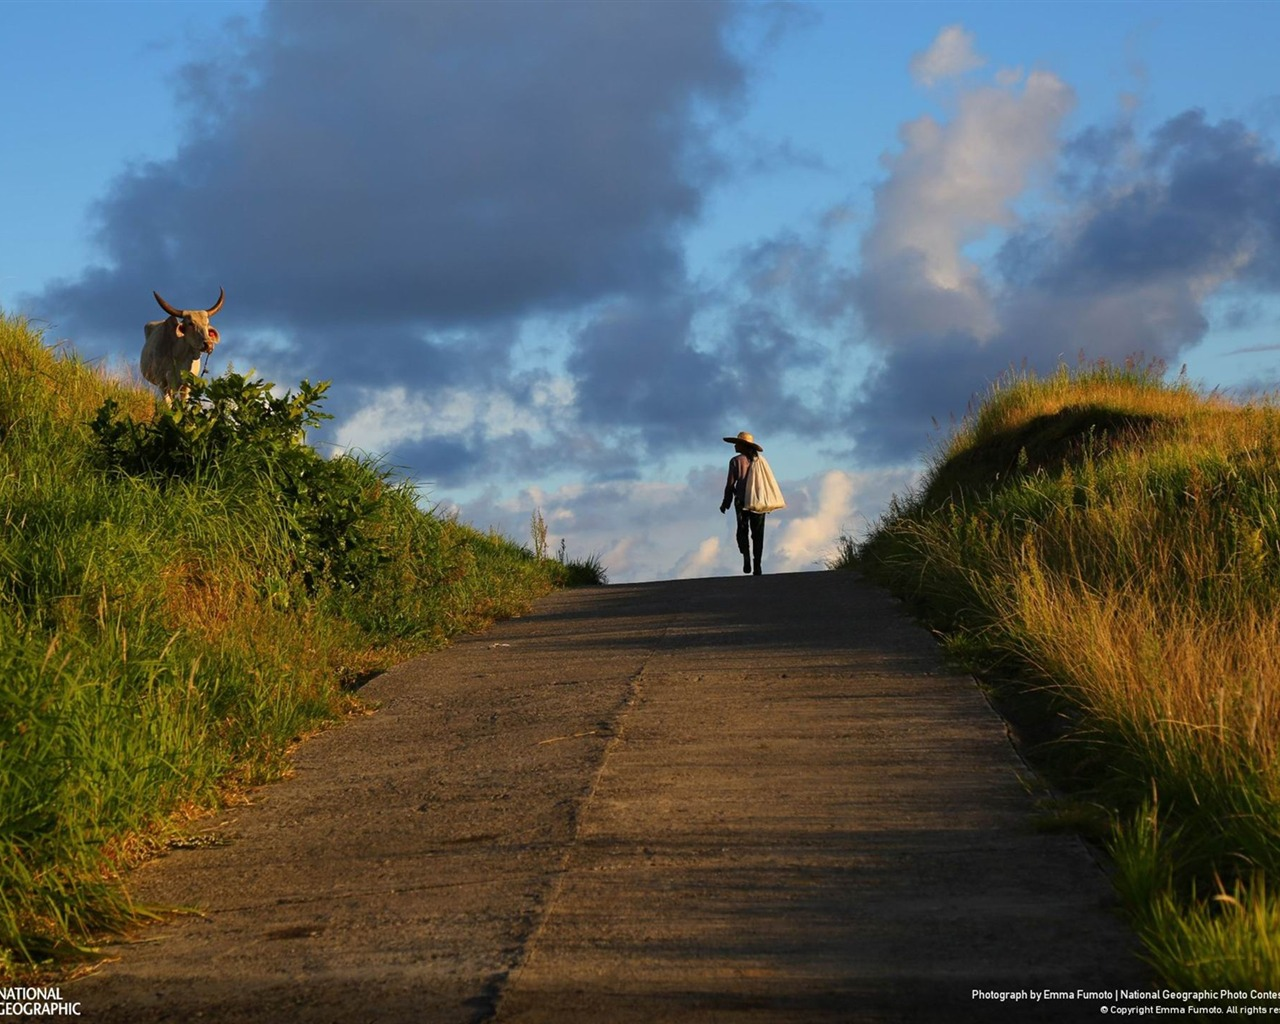 batanes sunsetnational geographic wallpaper preview